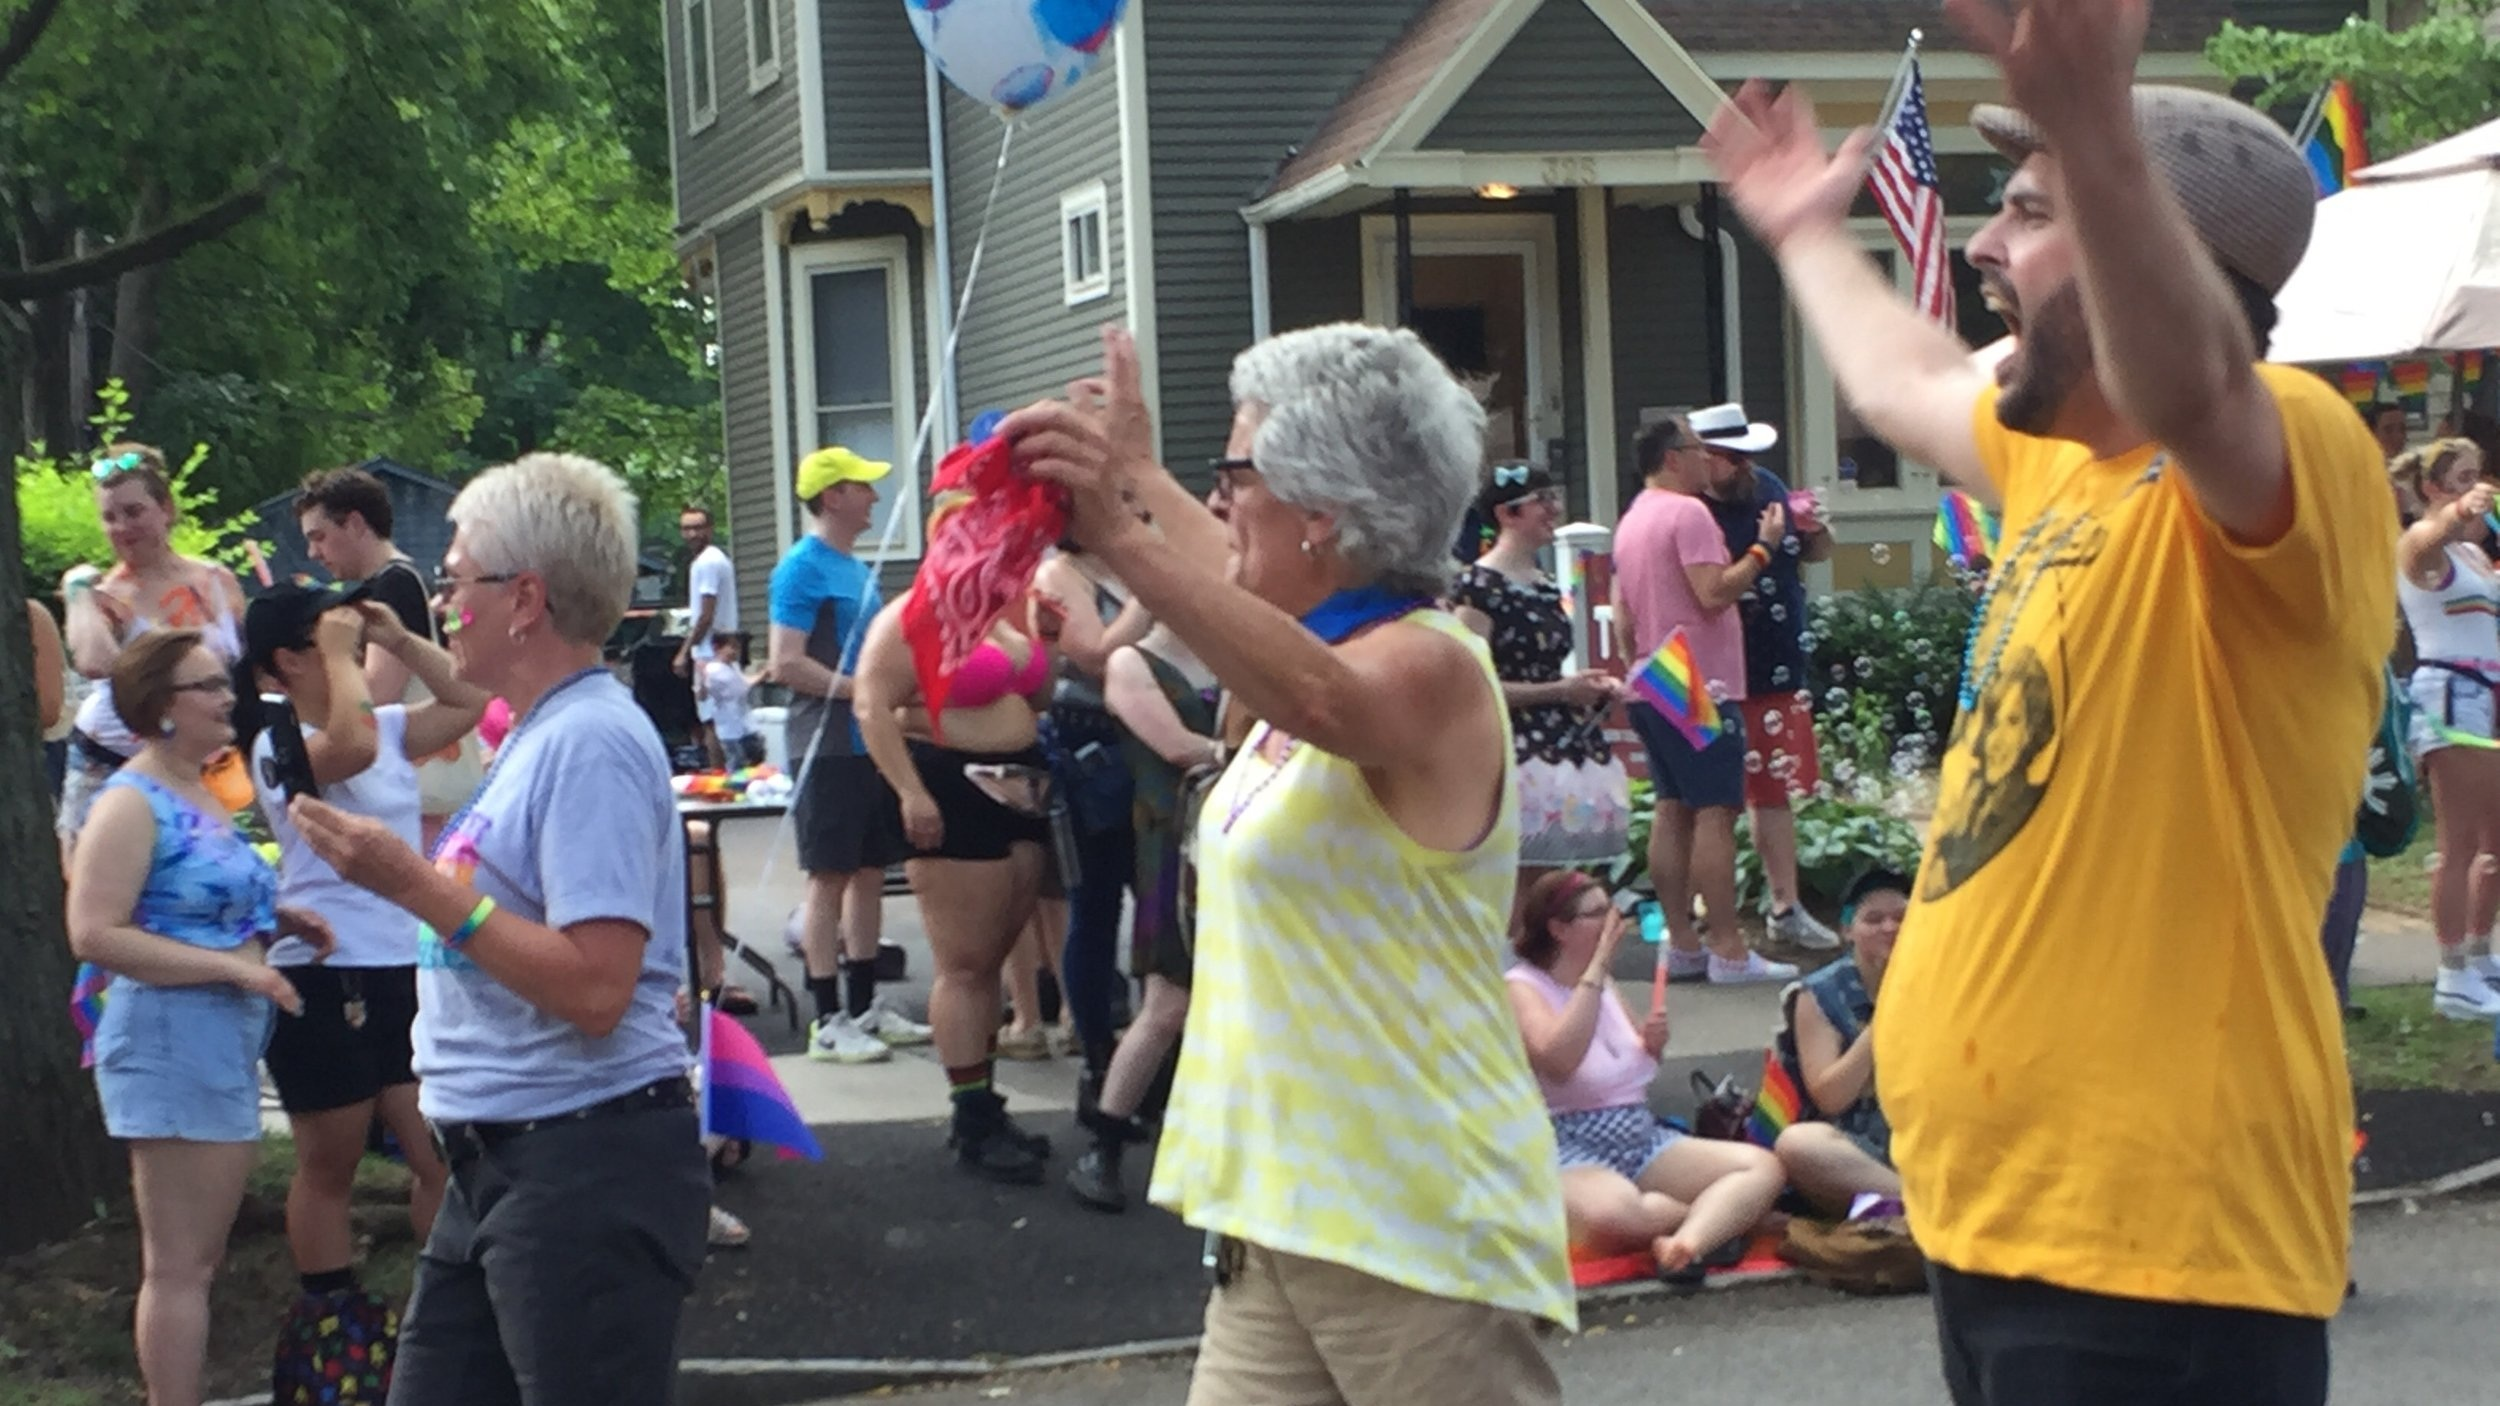 2019 07-20 Pride parade - MG - only councilmember w 2 moms - where you at Roc 2.jpeg